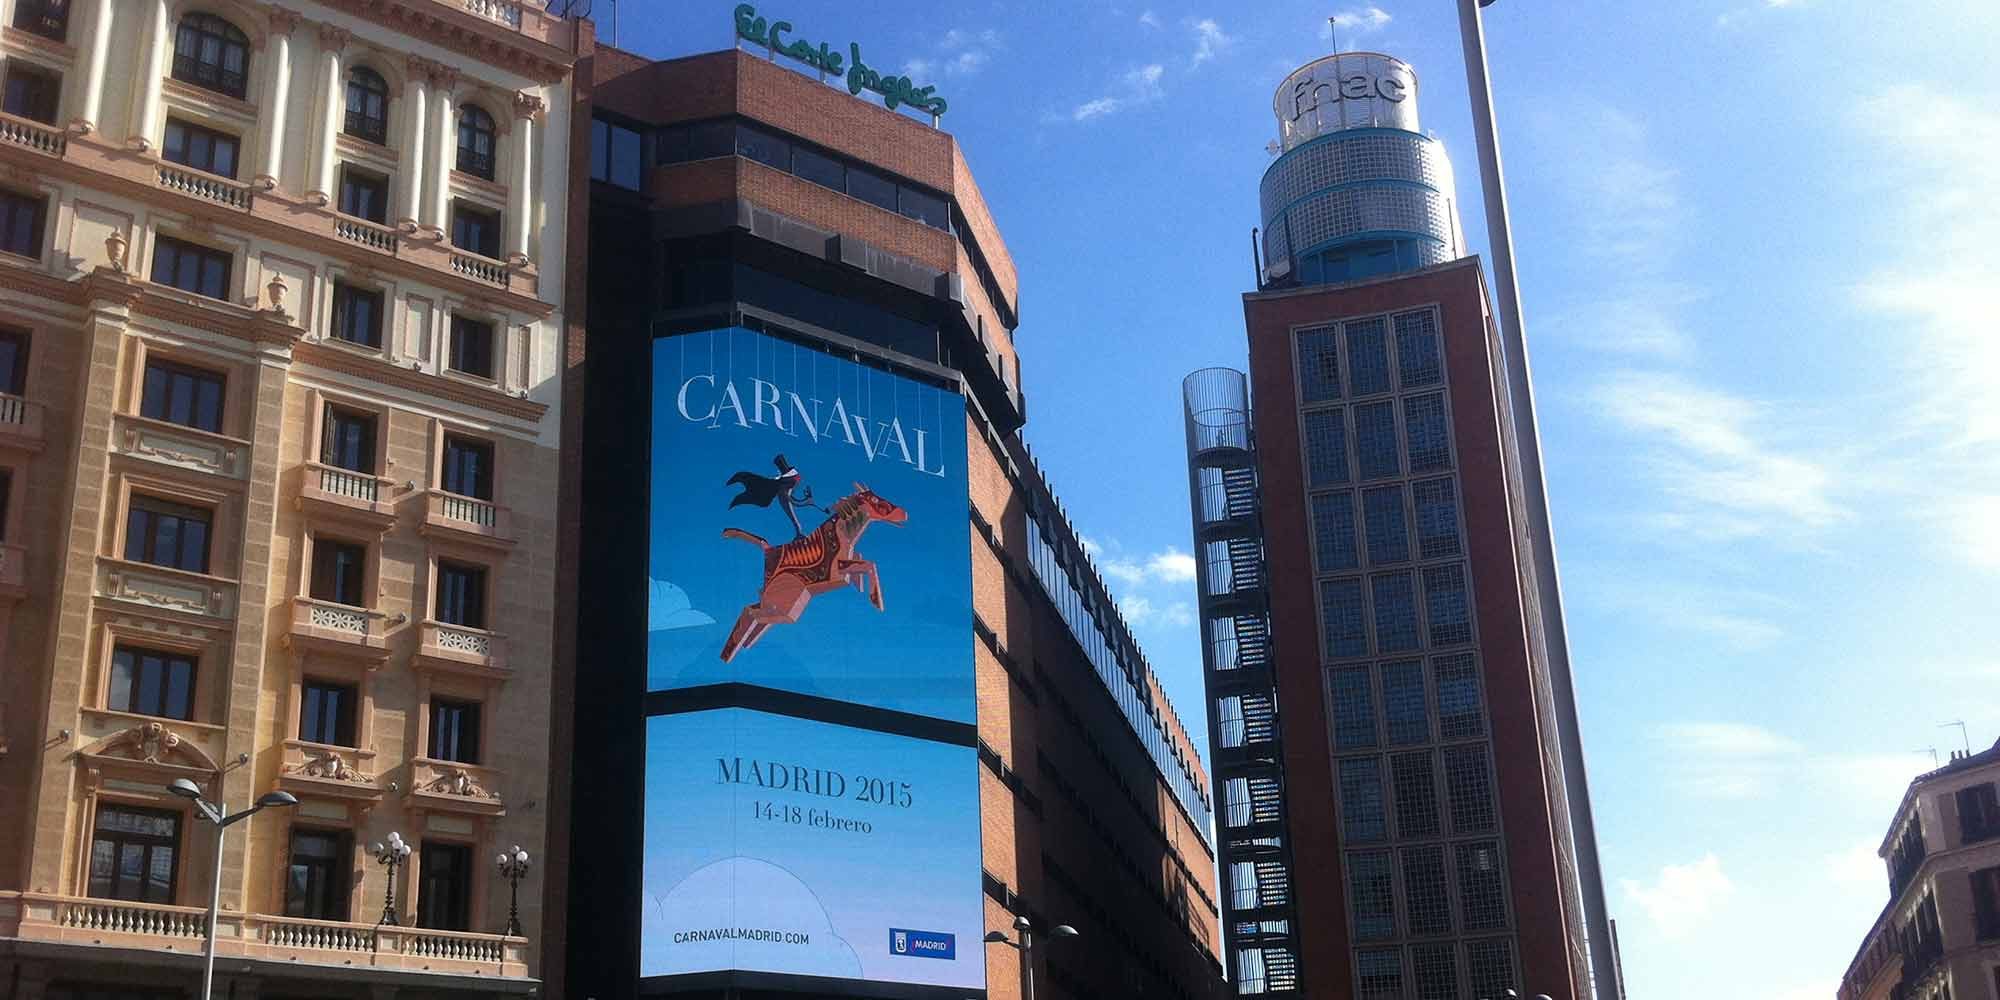 pantallas callao Corte Ingles Gran via spot animacion motion graphics carnaval madrid 2015